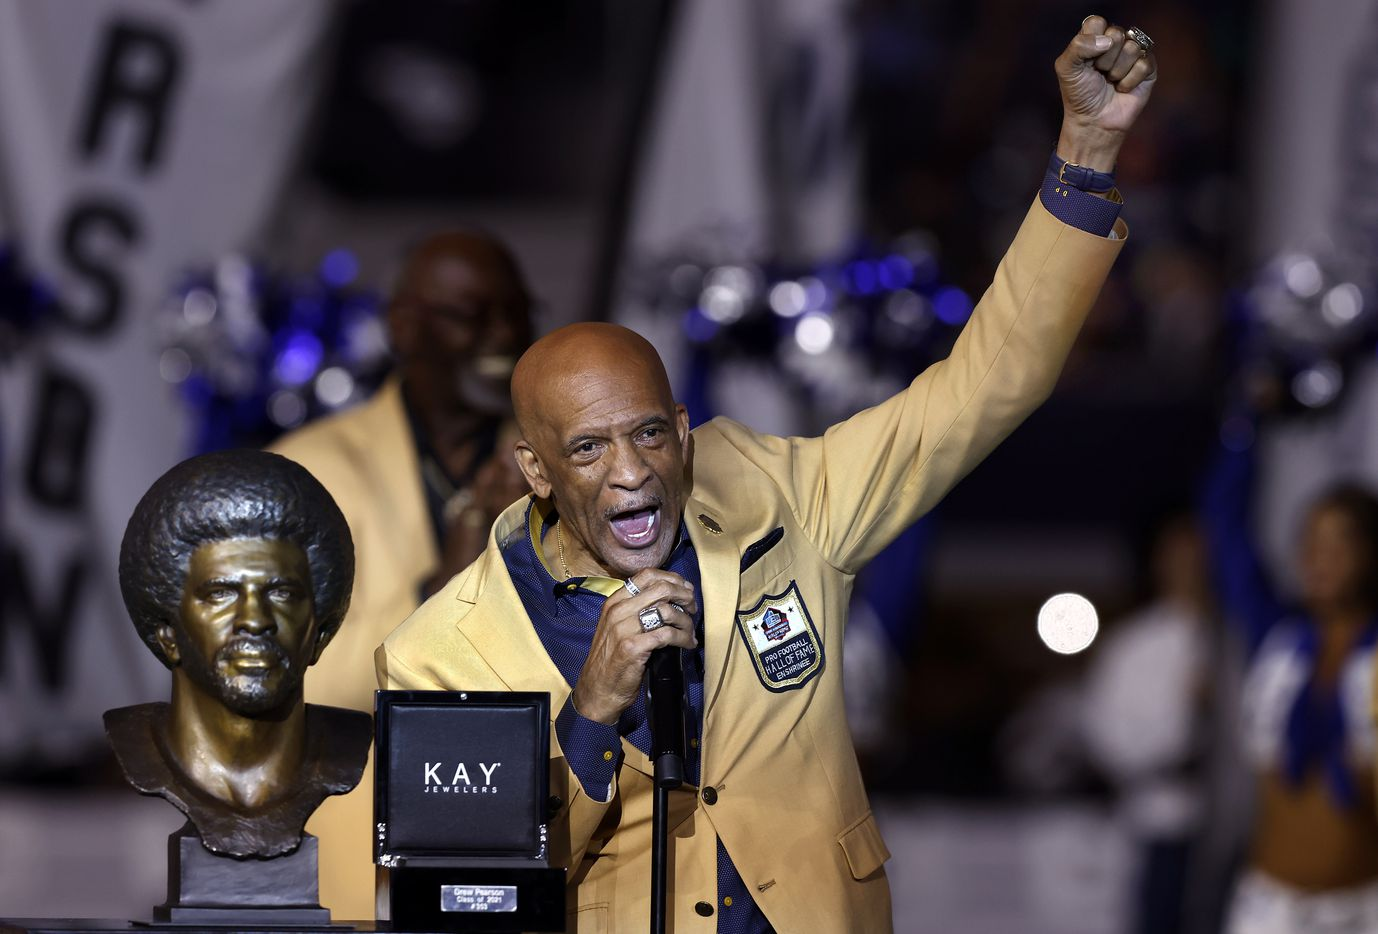 Dallas Cowboys Pro Football Hall of Famer Drew Pearson delivers his ring ceremony speech to the halftime crowd at AT&T Stadium in Arlington, Monday, September 27, 2021. (Tom Fox/The Dallas Morning News)